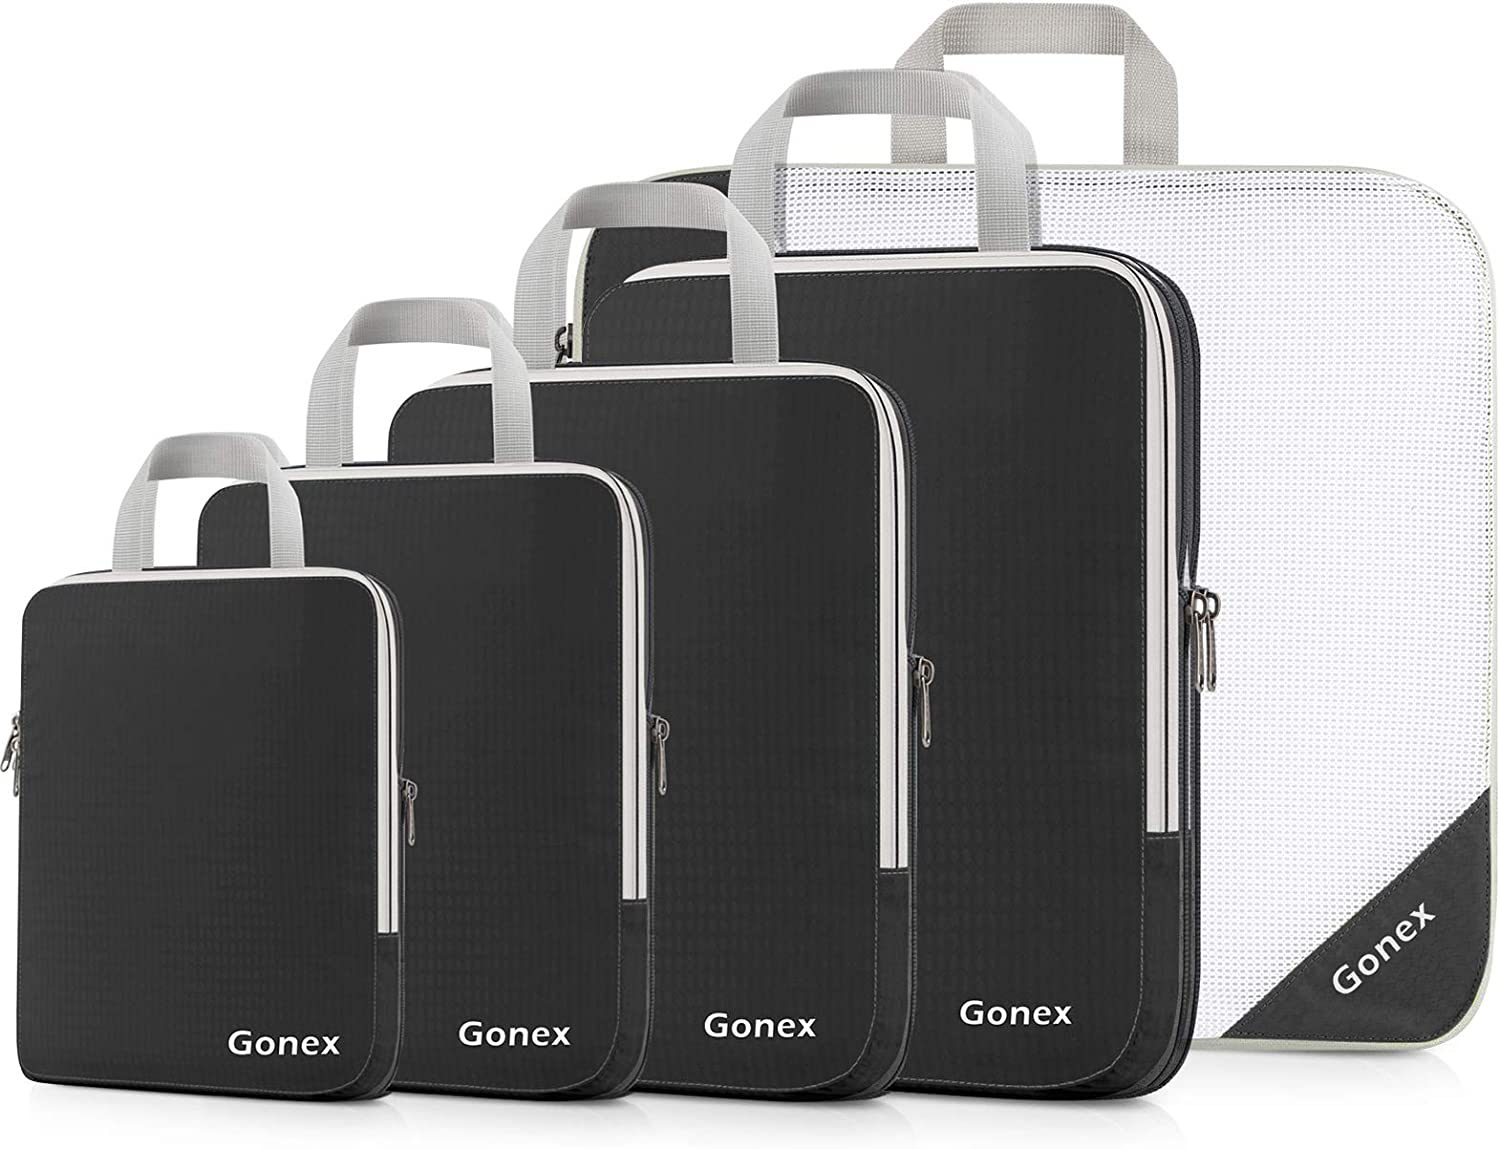 Gonex Compression Packing Cubes, 5pcs Expandable Storage Travel Luggage Bags Organizers